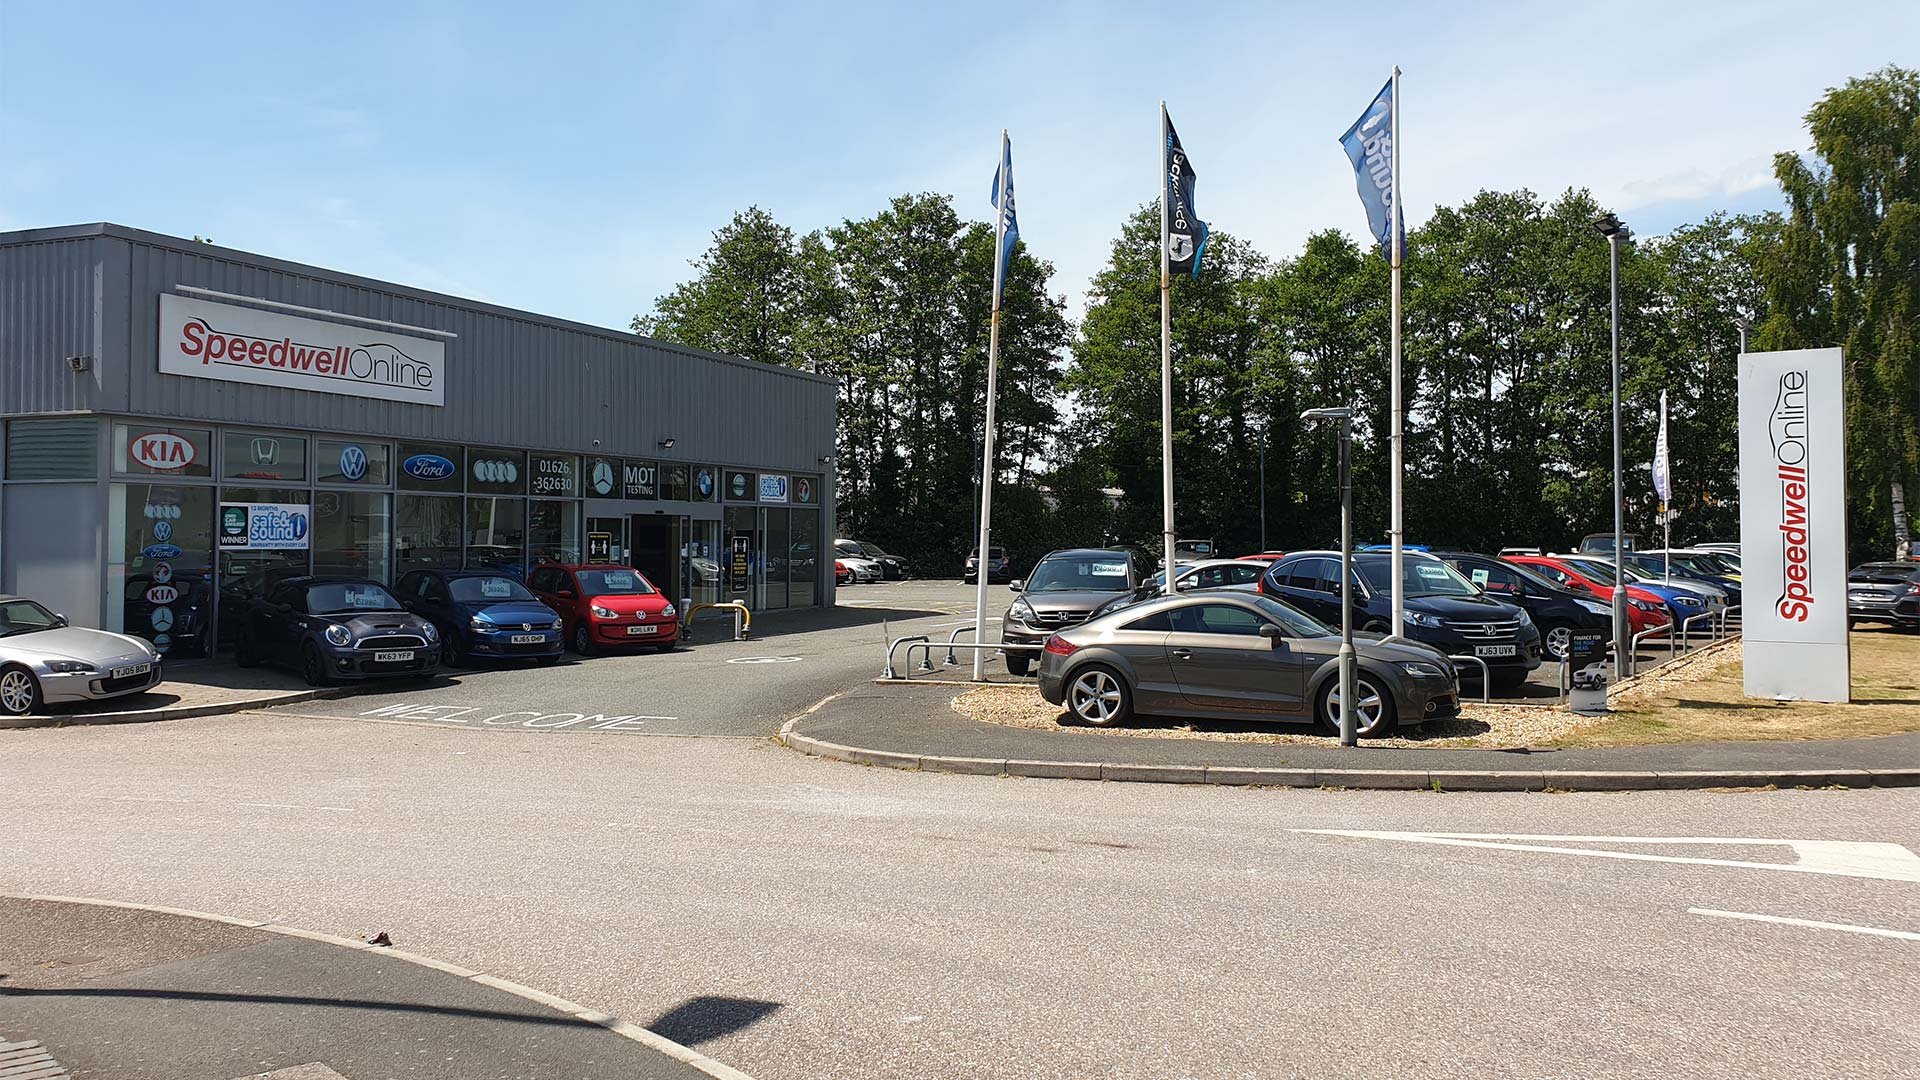 Visit Speedwell Online in Kingsteignton | We offer a wide variety of used cars